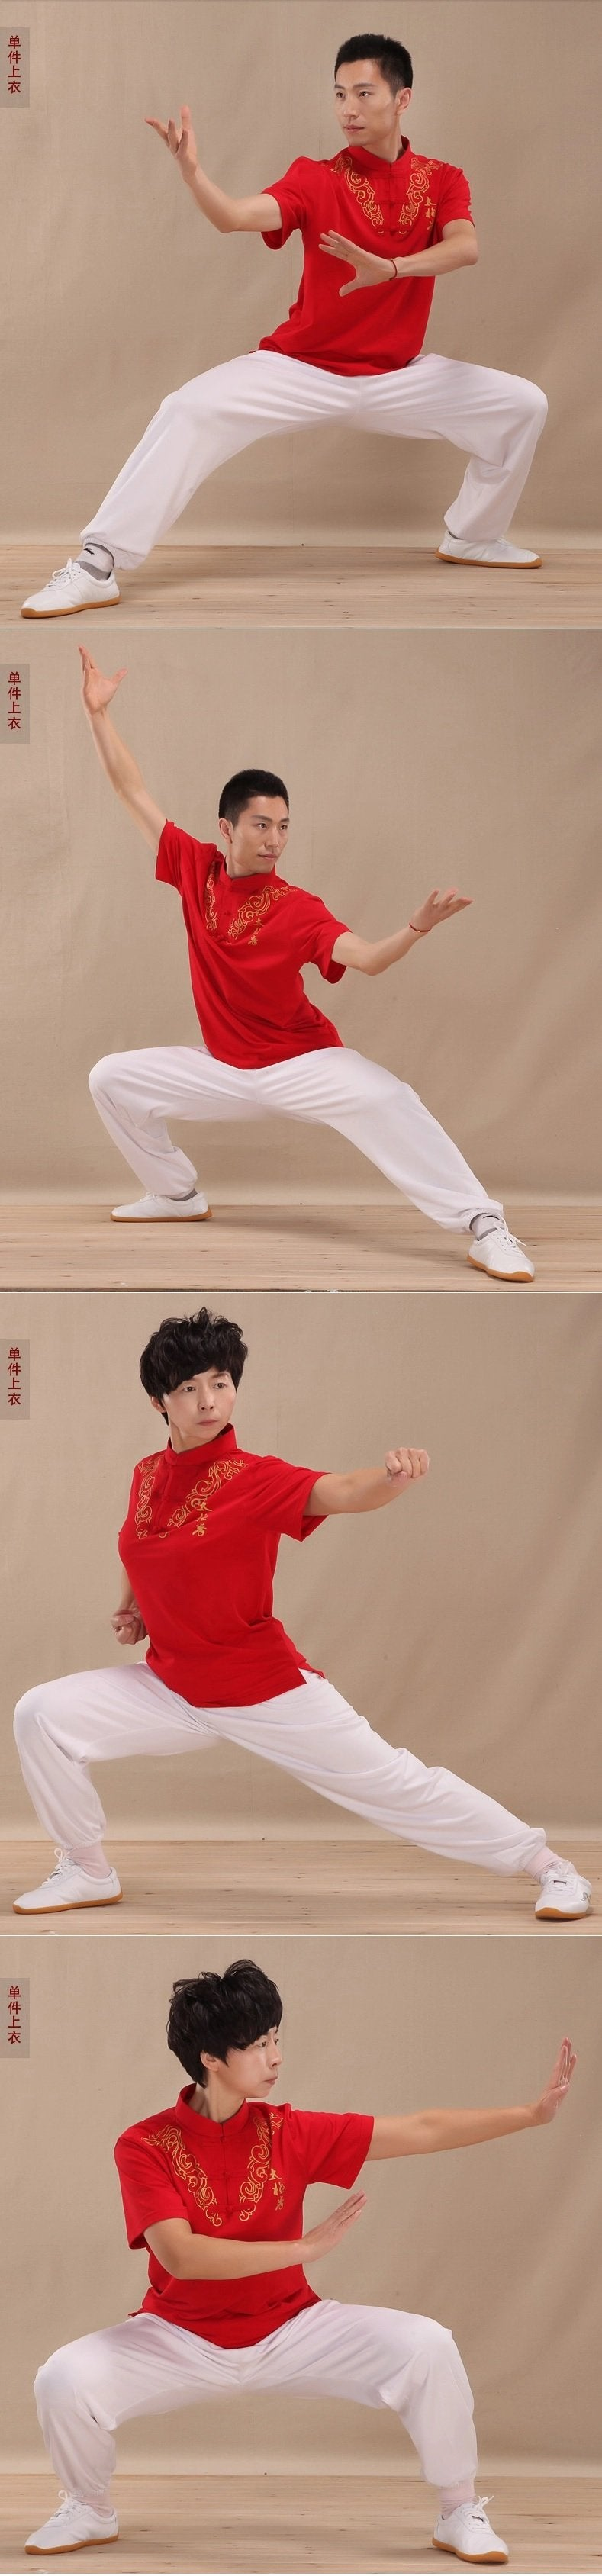 Red Short Sleeve Cotton Tai Chi Shirt